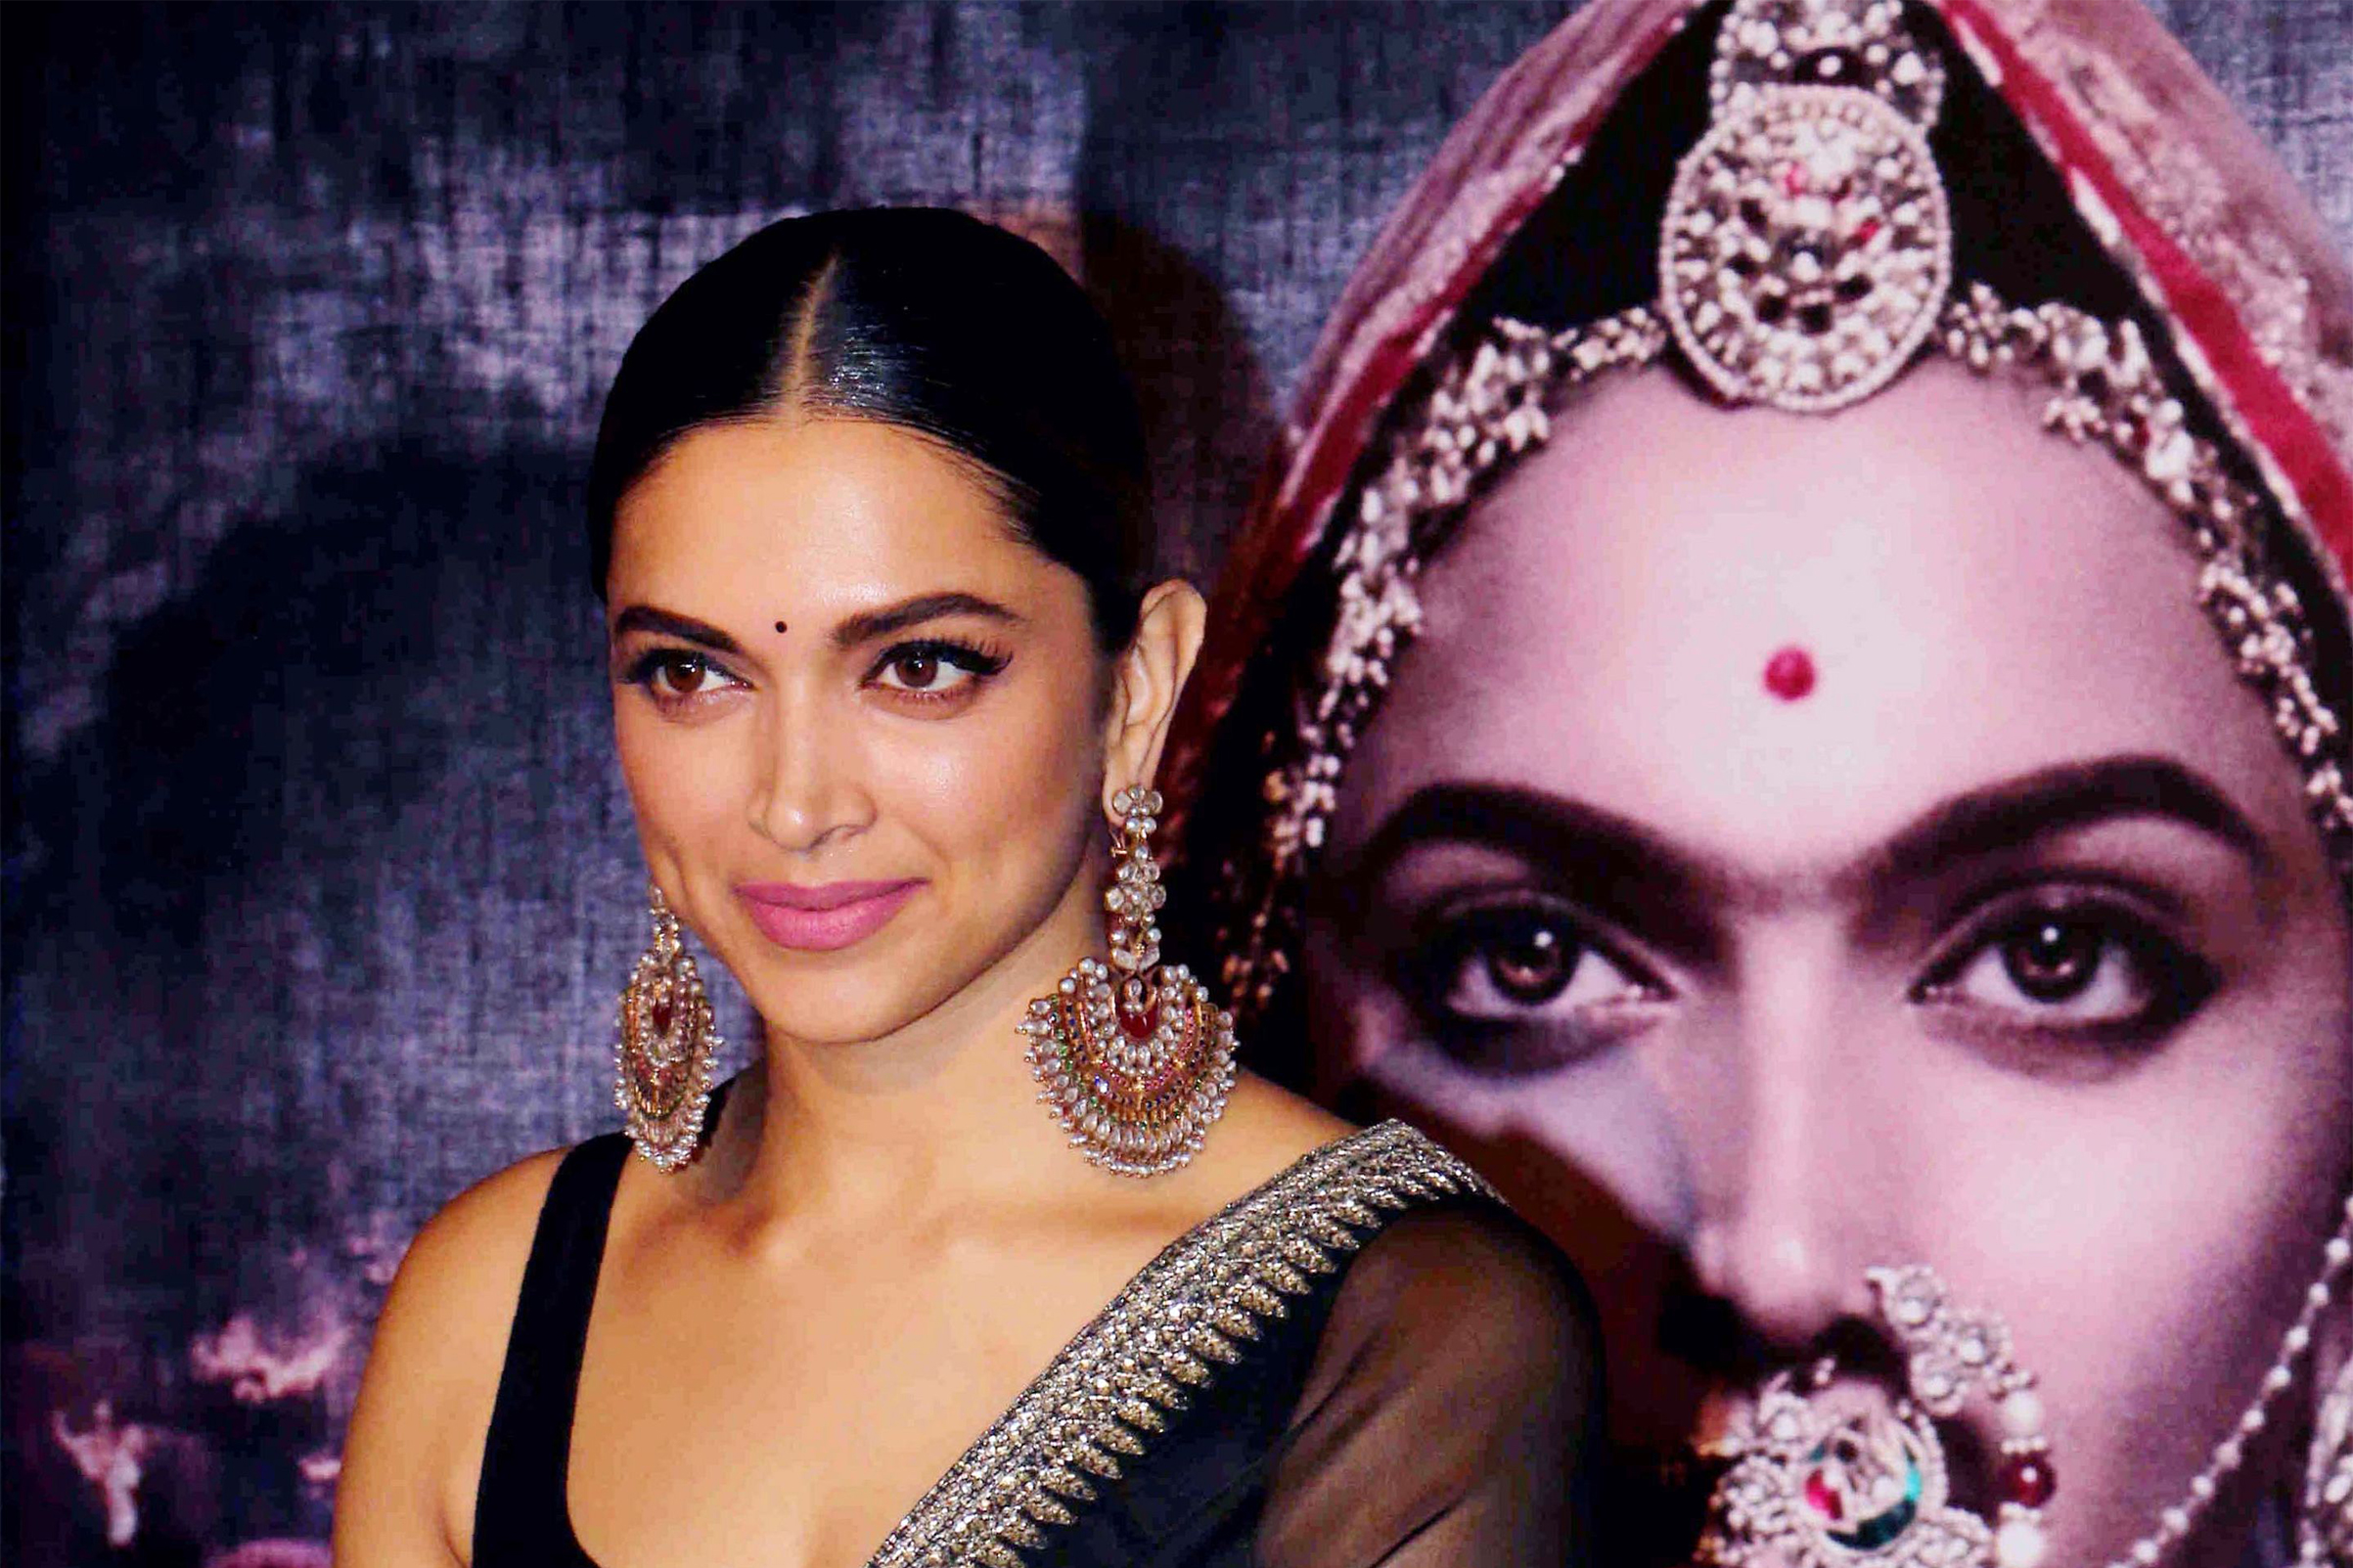 Actor Deepika Padukone was put under police protection after receiving death threats.